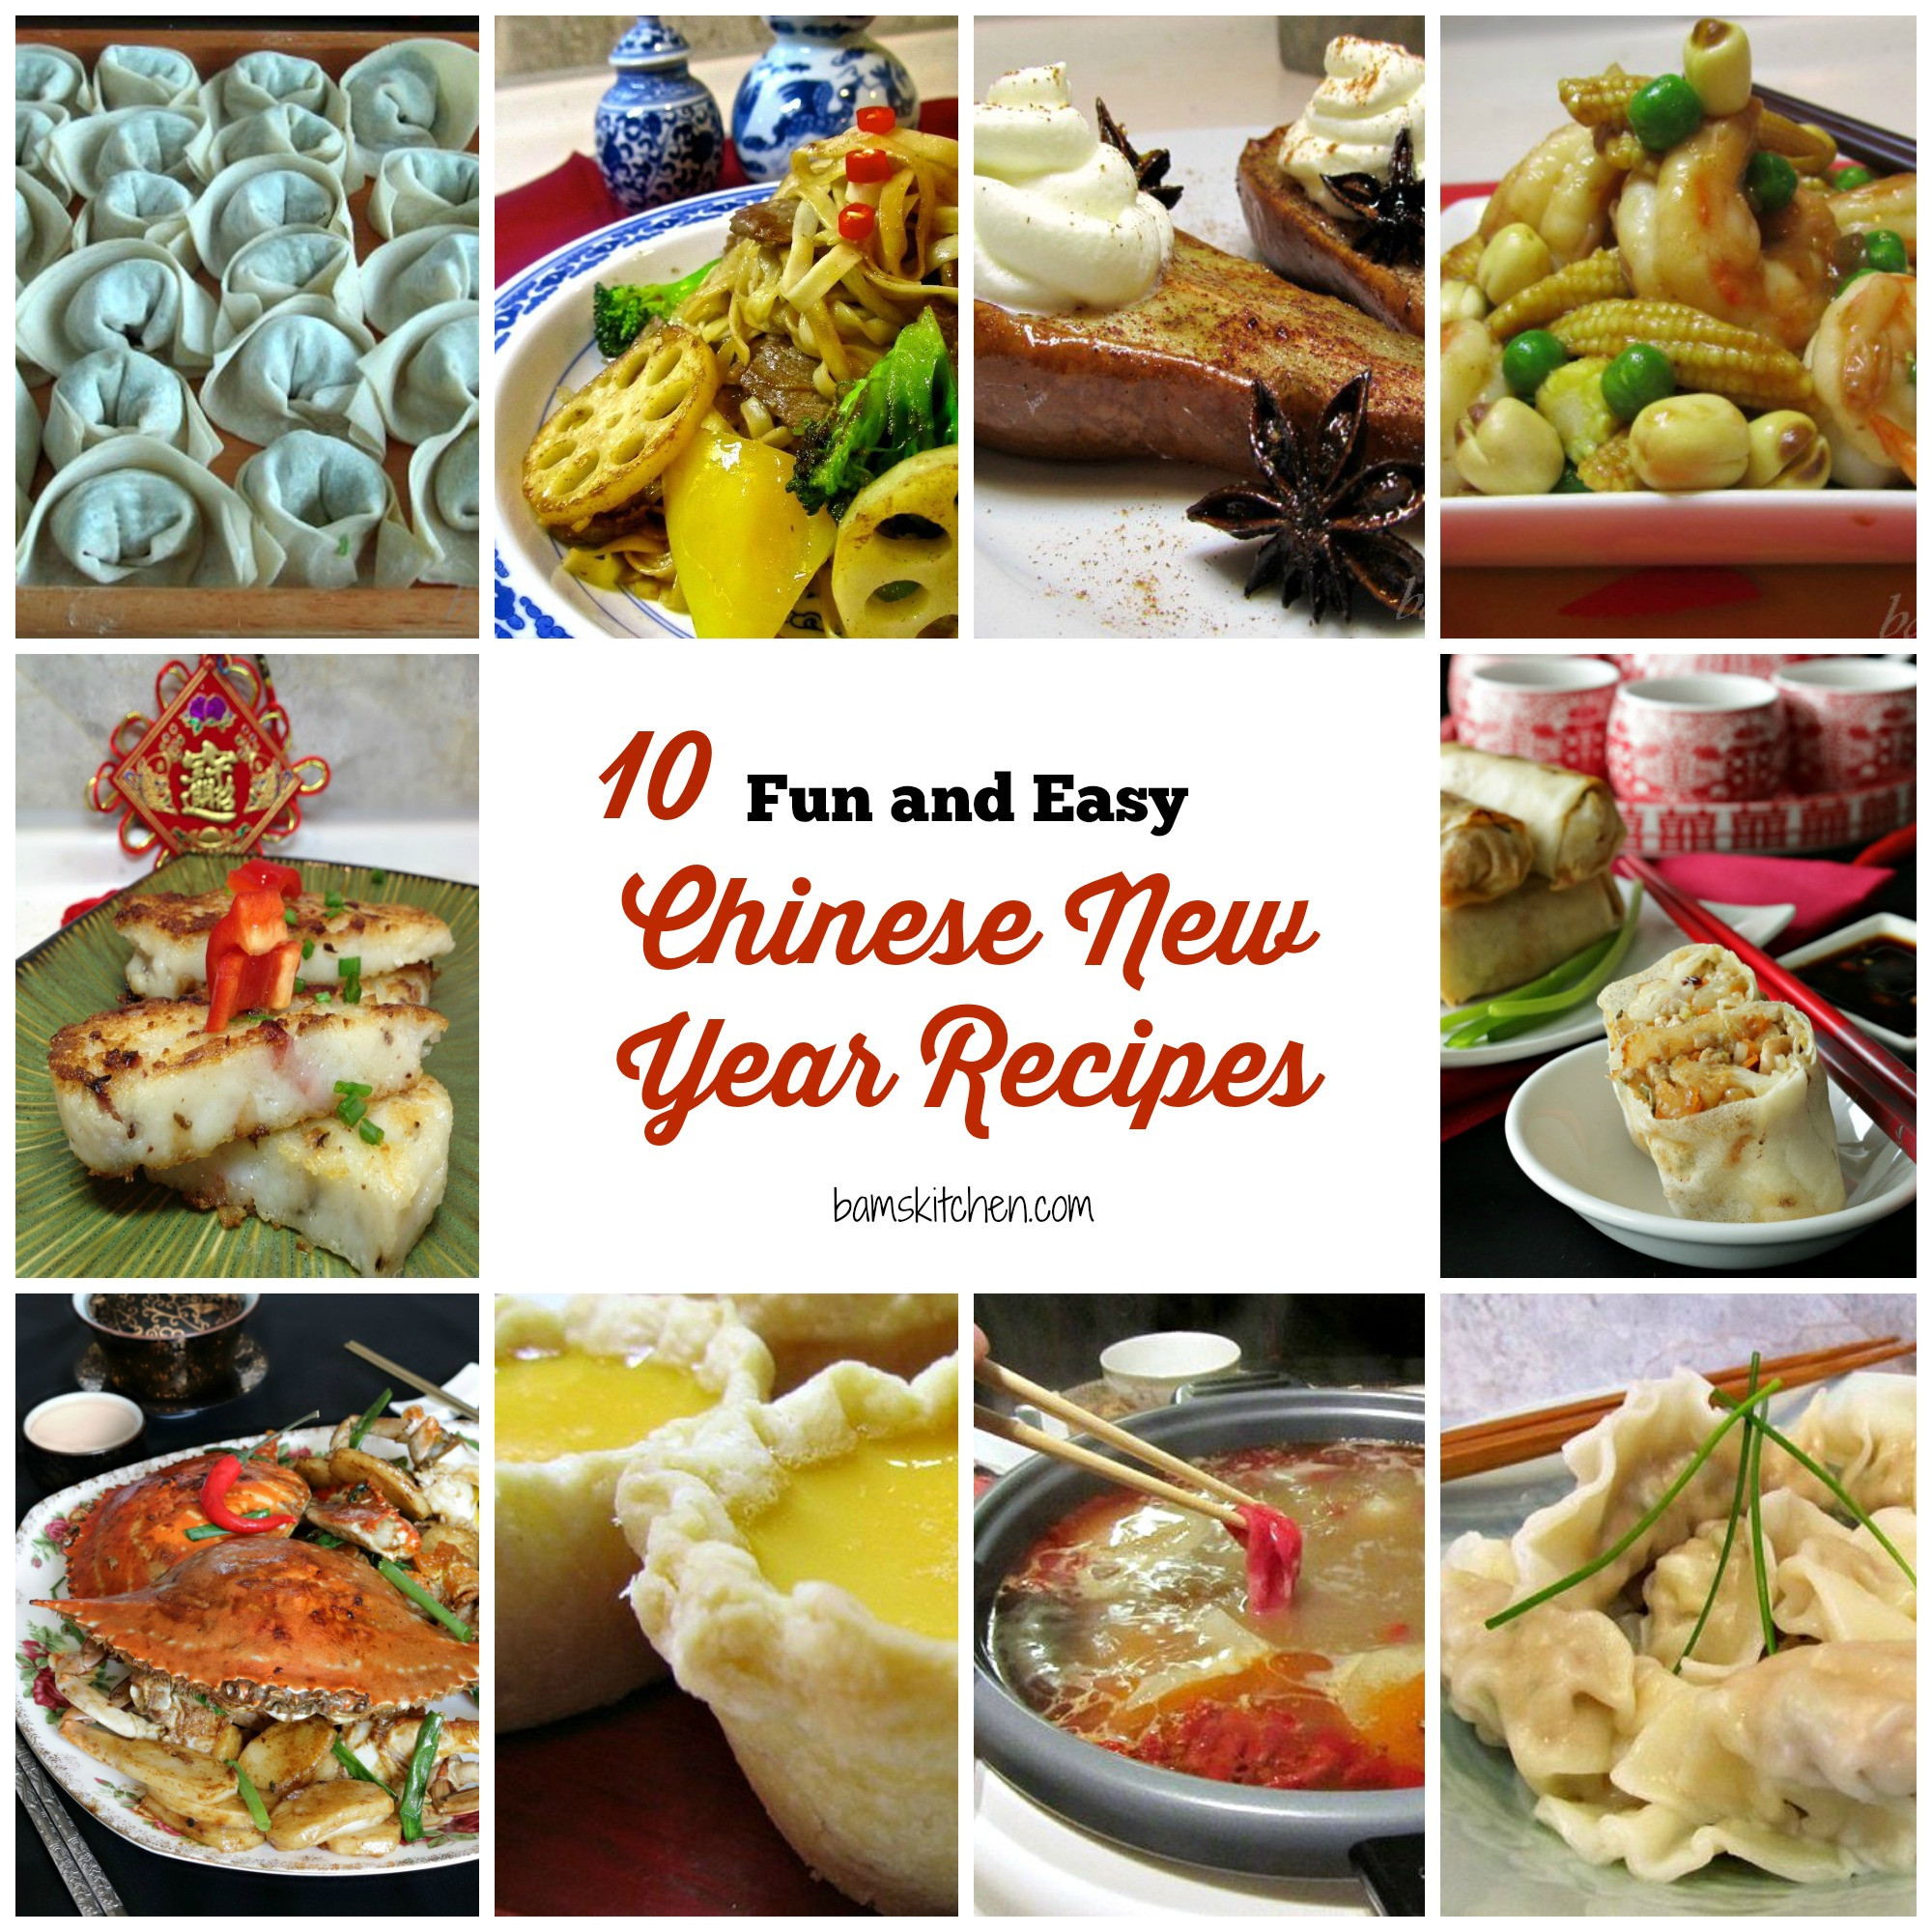 Easy Chinese Recipes  10 Fun and Easy Chinese New Year Recipes Healthy World